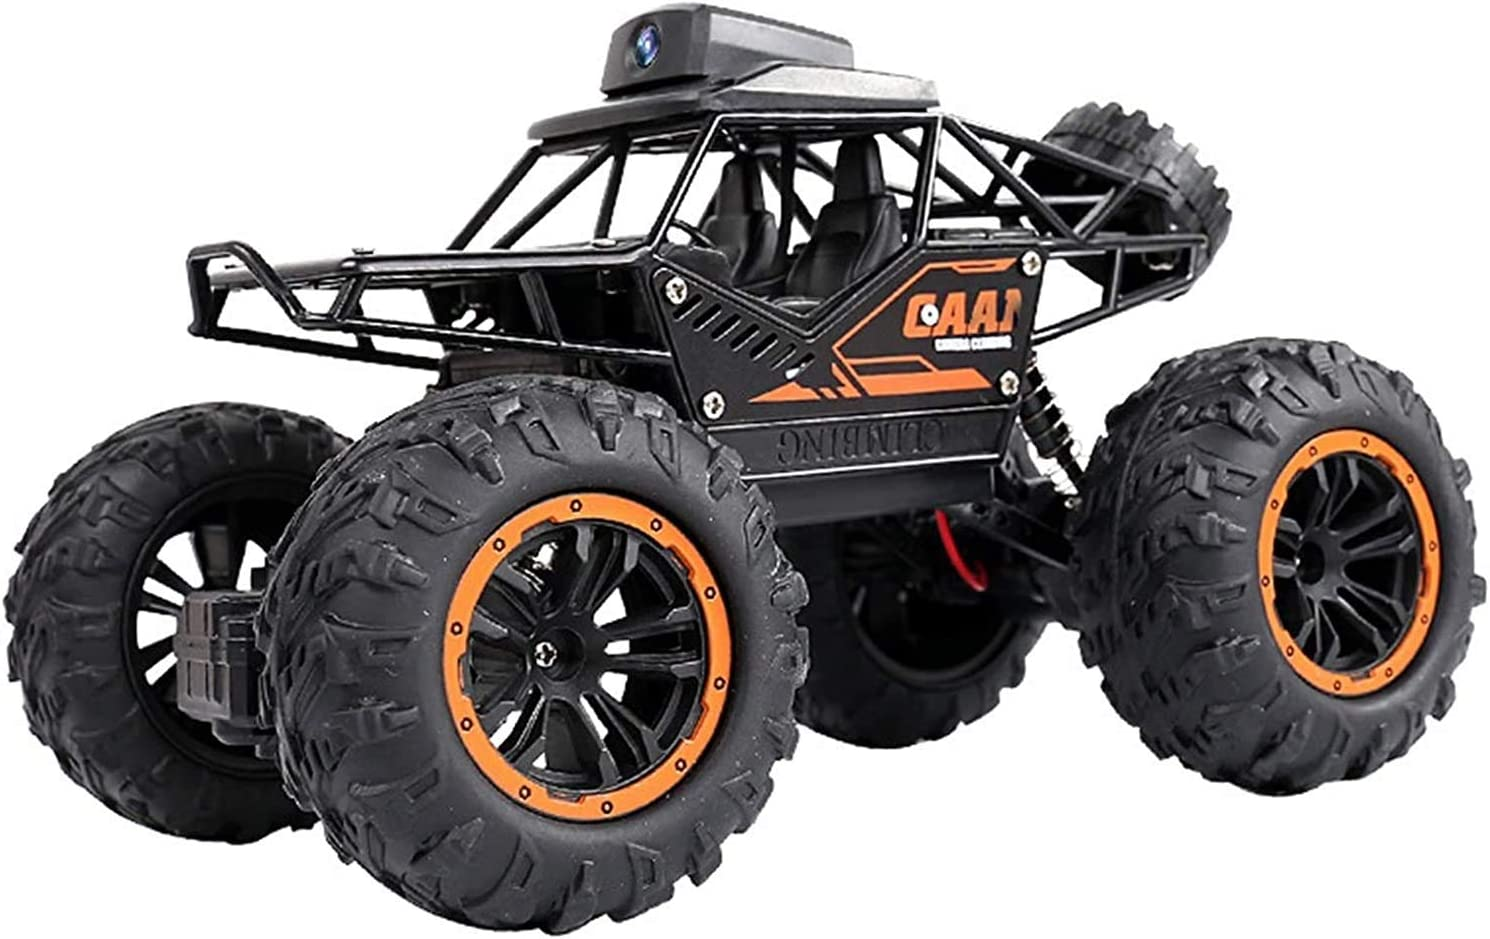 wangch Remote Control Toy WiFi Re Gifts Camera Soldering Off-Road high-Speed car